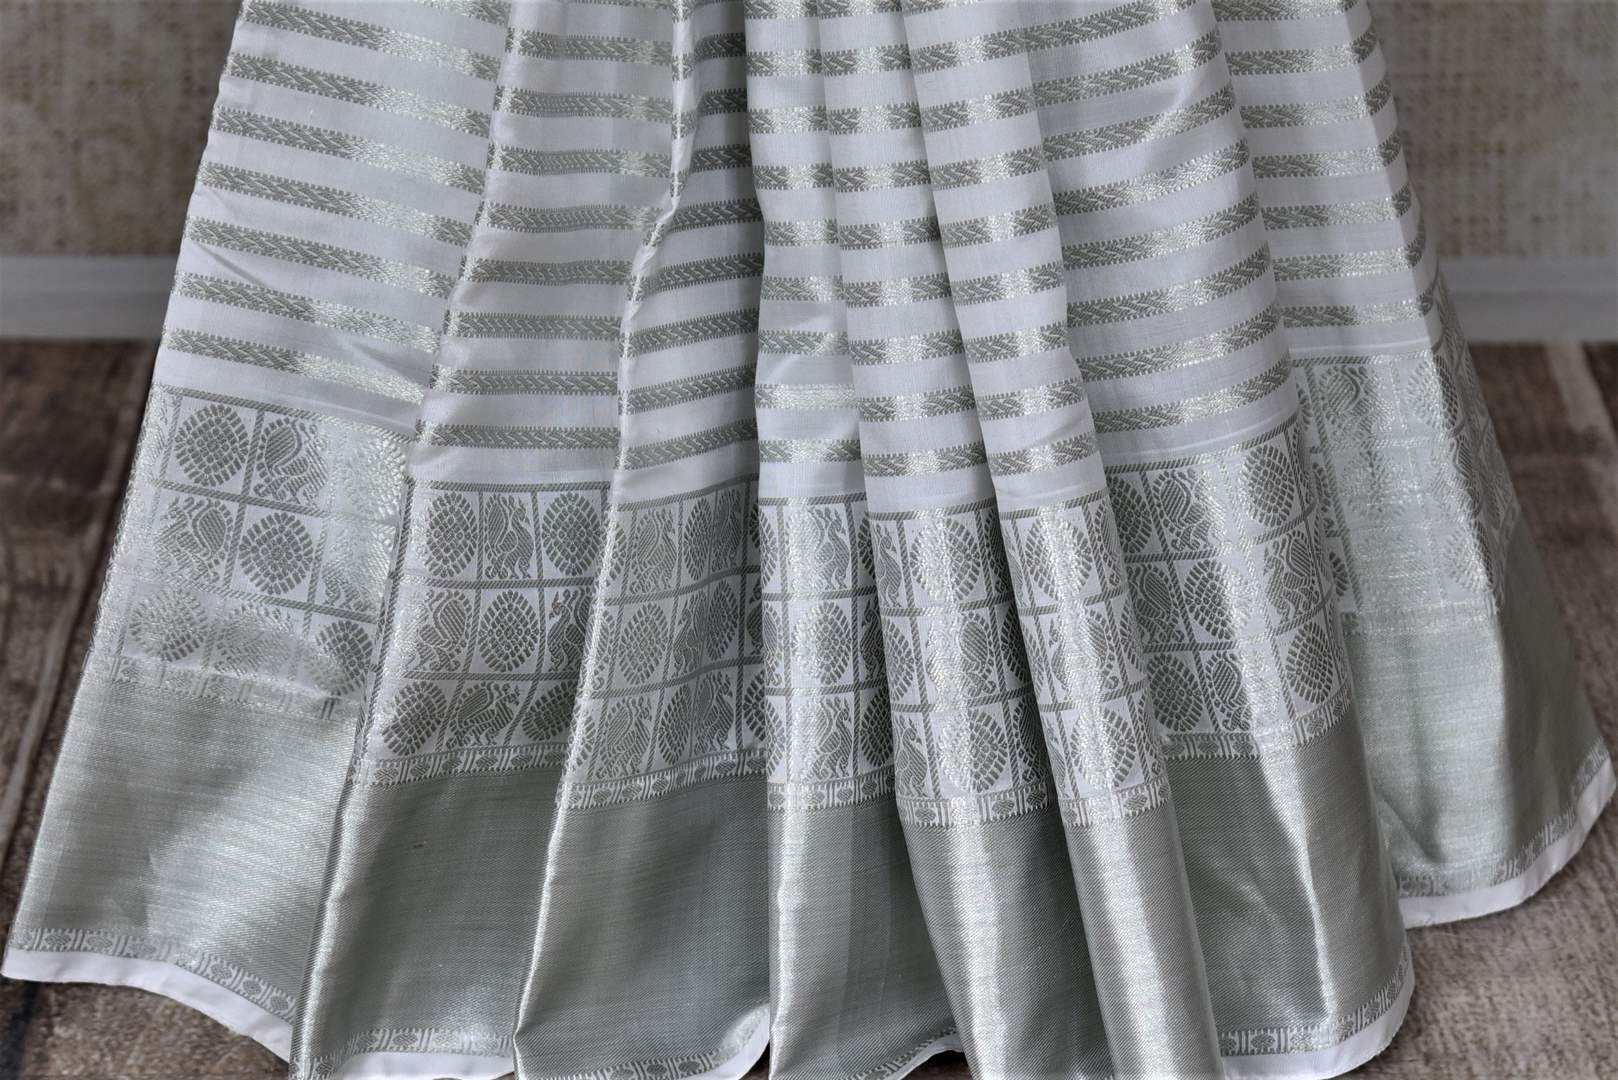 Shop elegant white zari stripes Kanjivaram sari online in USA. Let your elegance be the highlight of every occasion with stunning handwoven sarees, soft silk sarees, traditional Kanchipuram sarees from Pure Elegance Indian fashion boutique in USA.-pleats